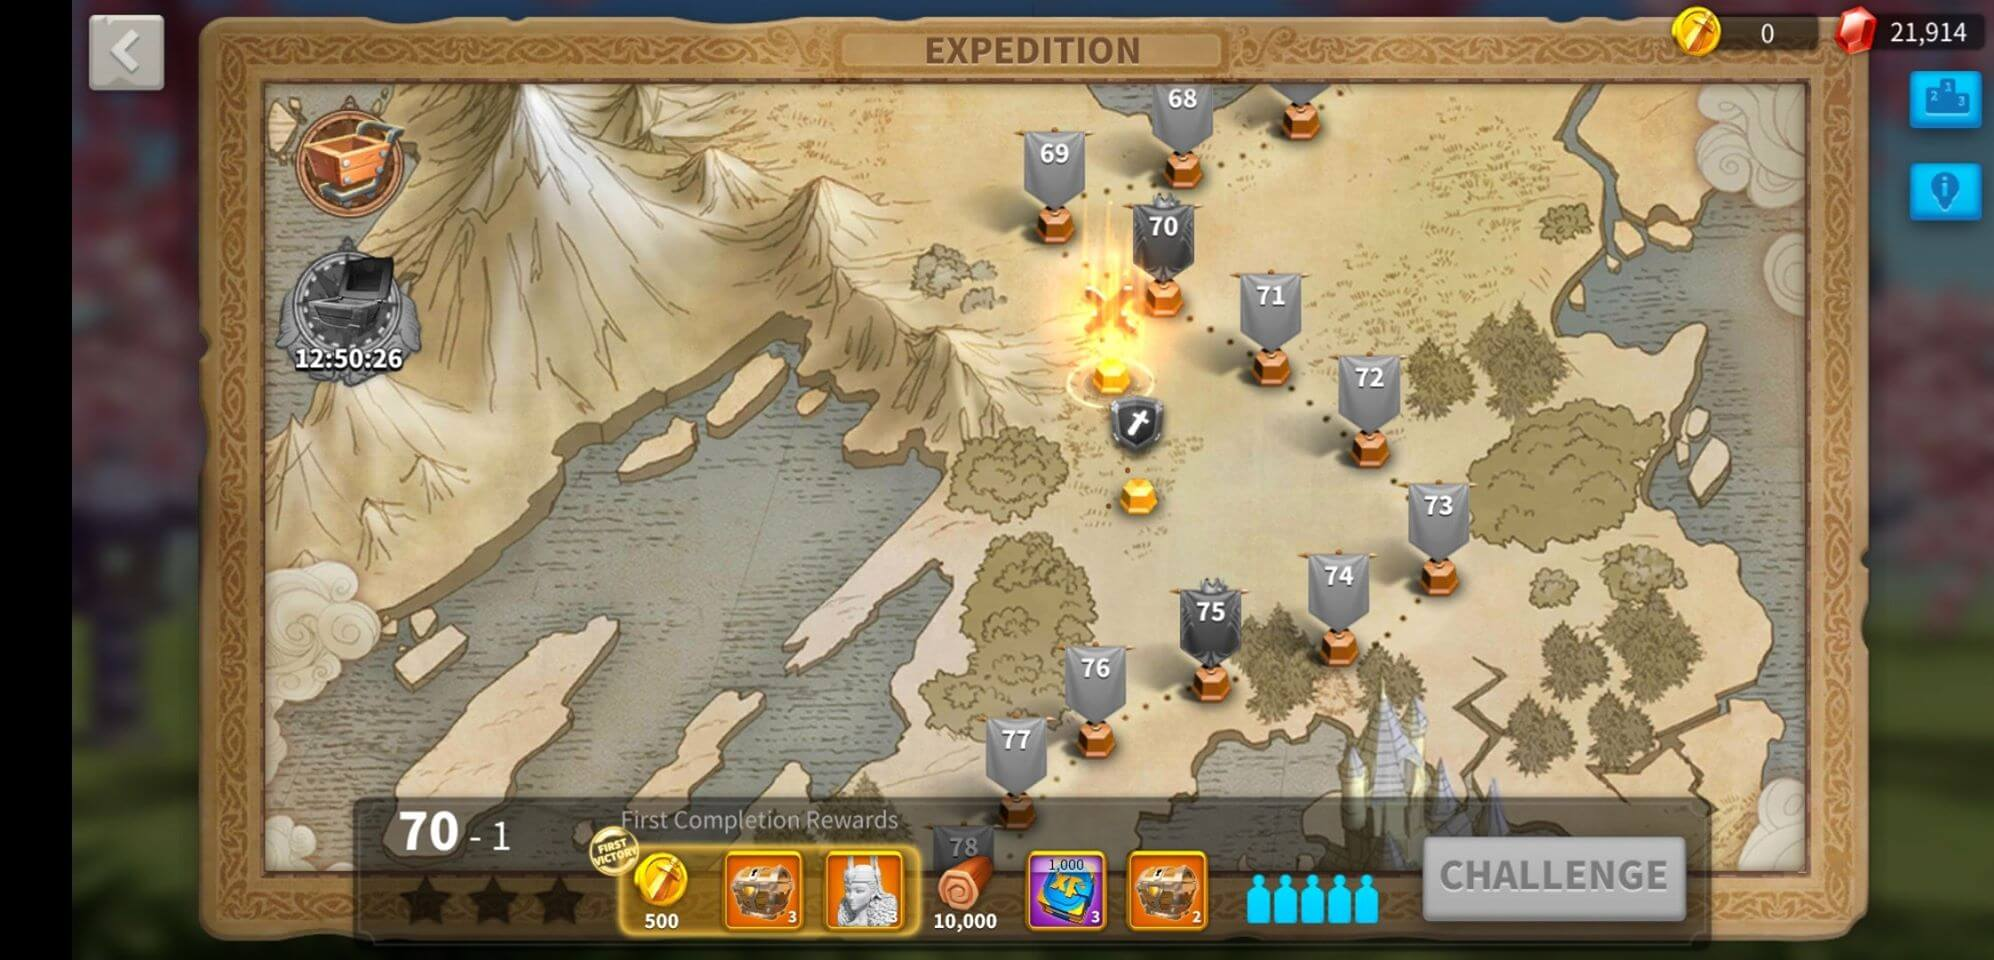 new expedition levels